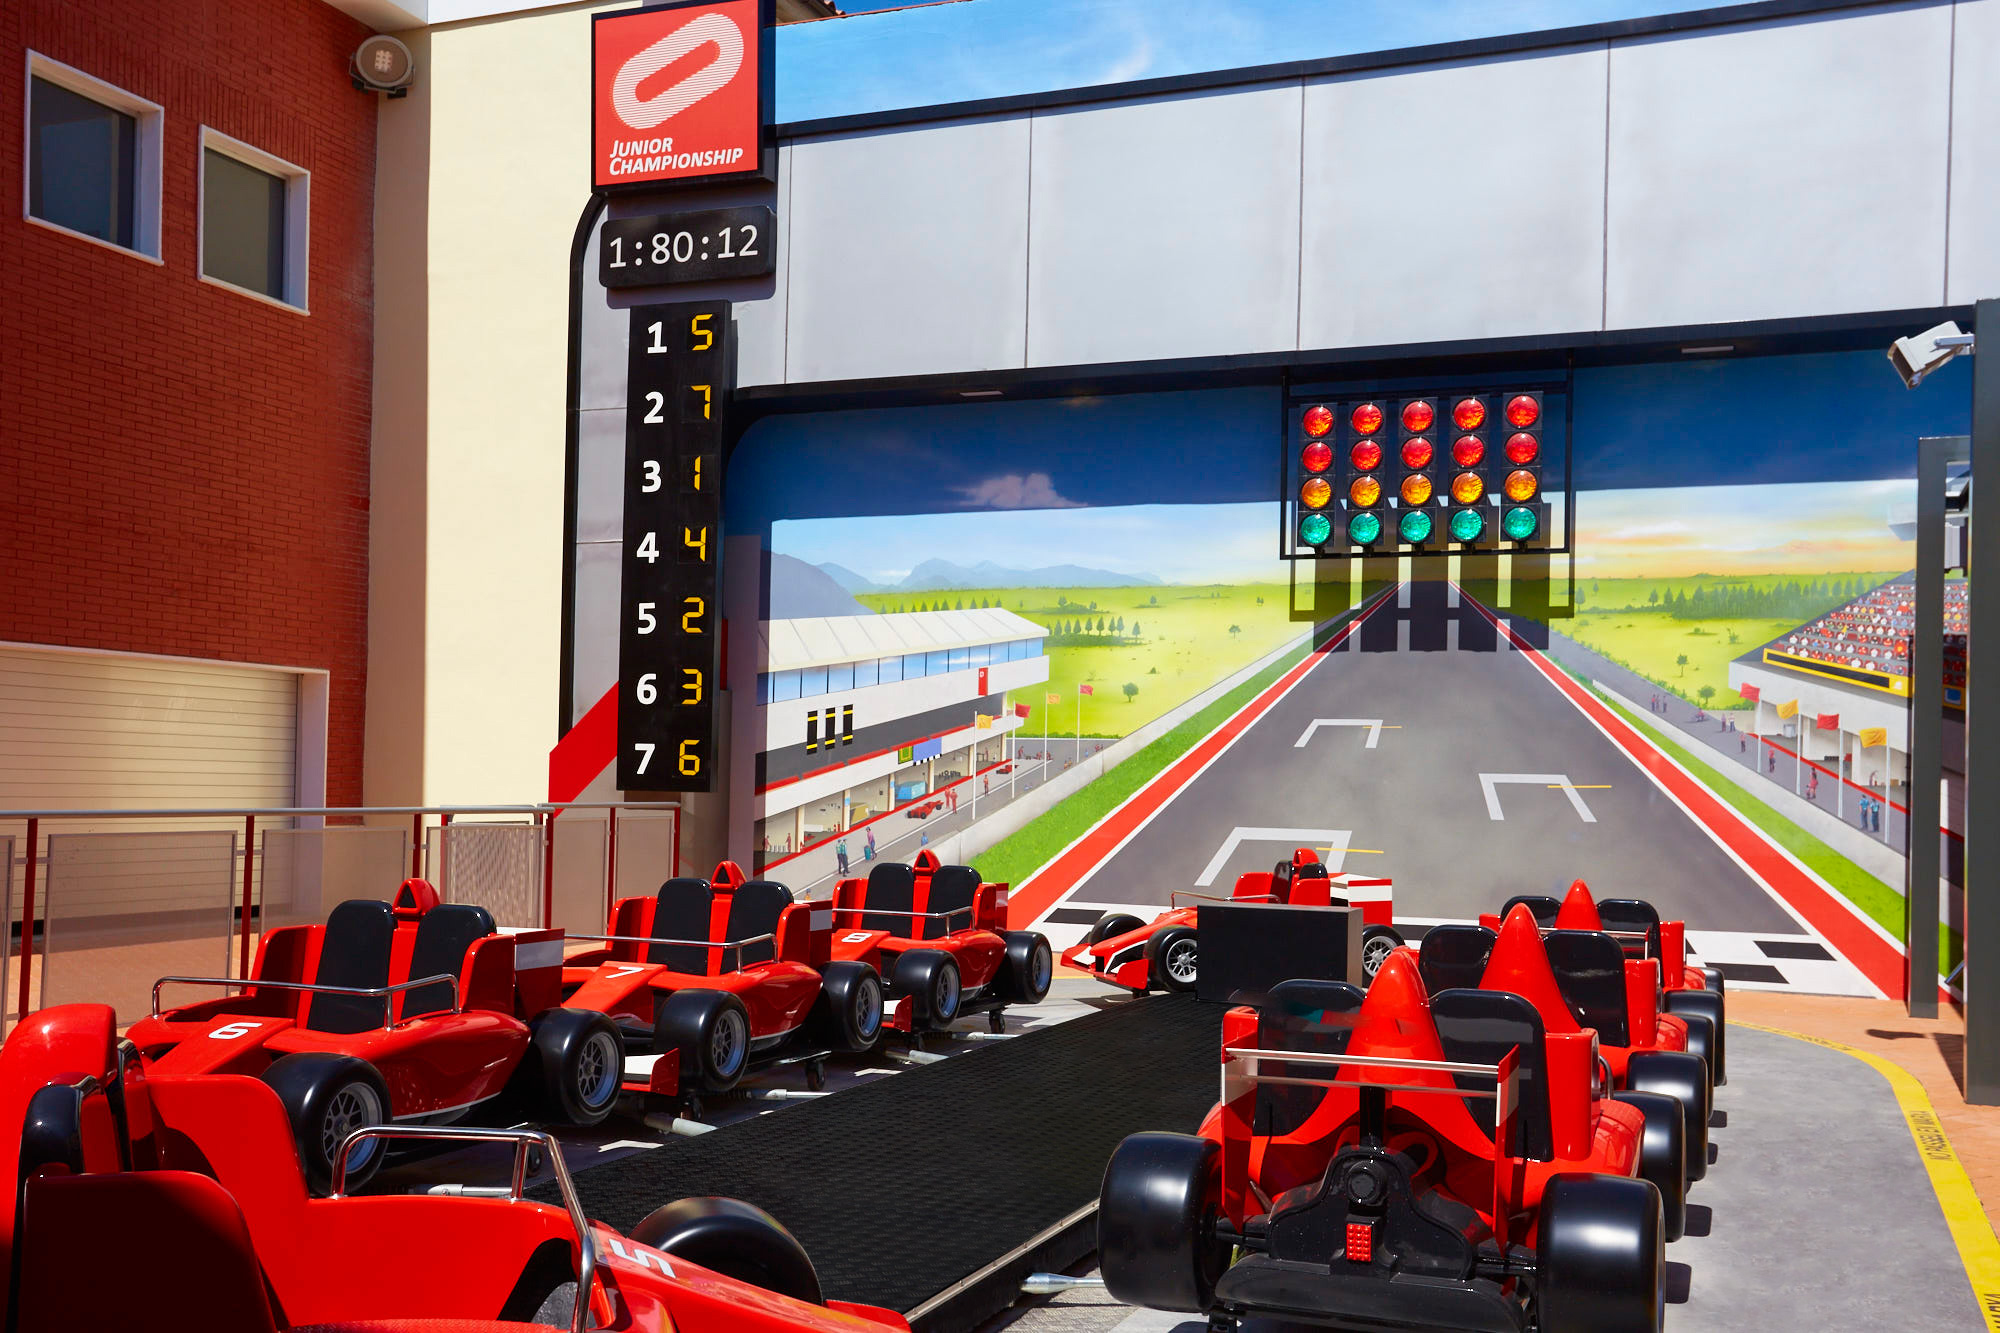 Junior Championship Ferrari Land 1